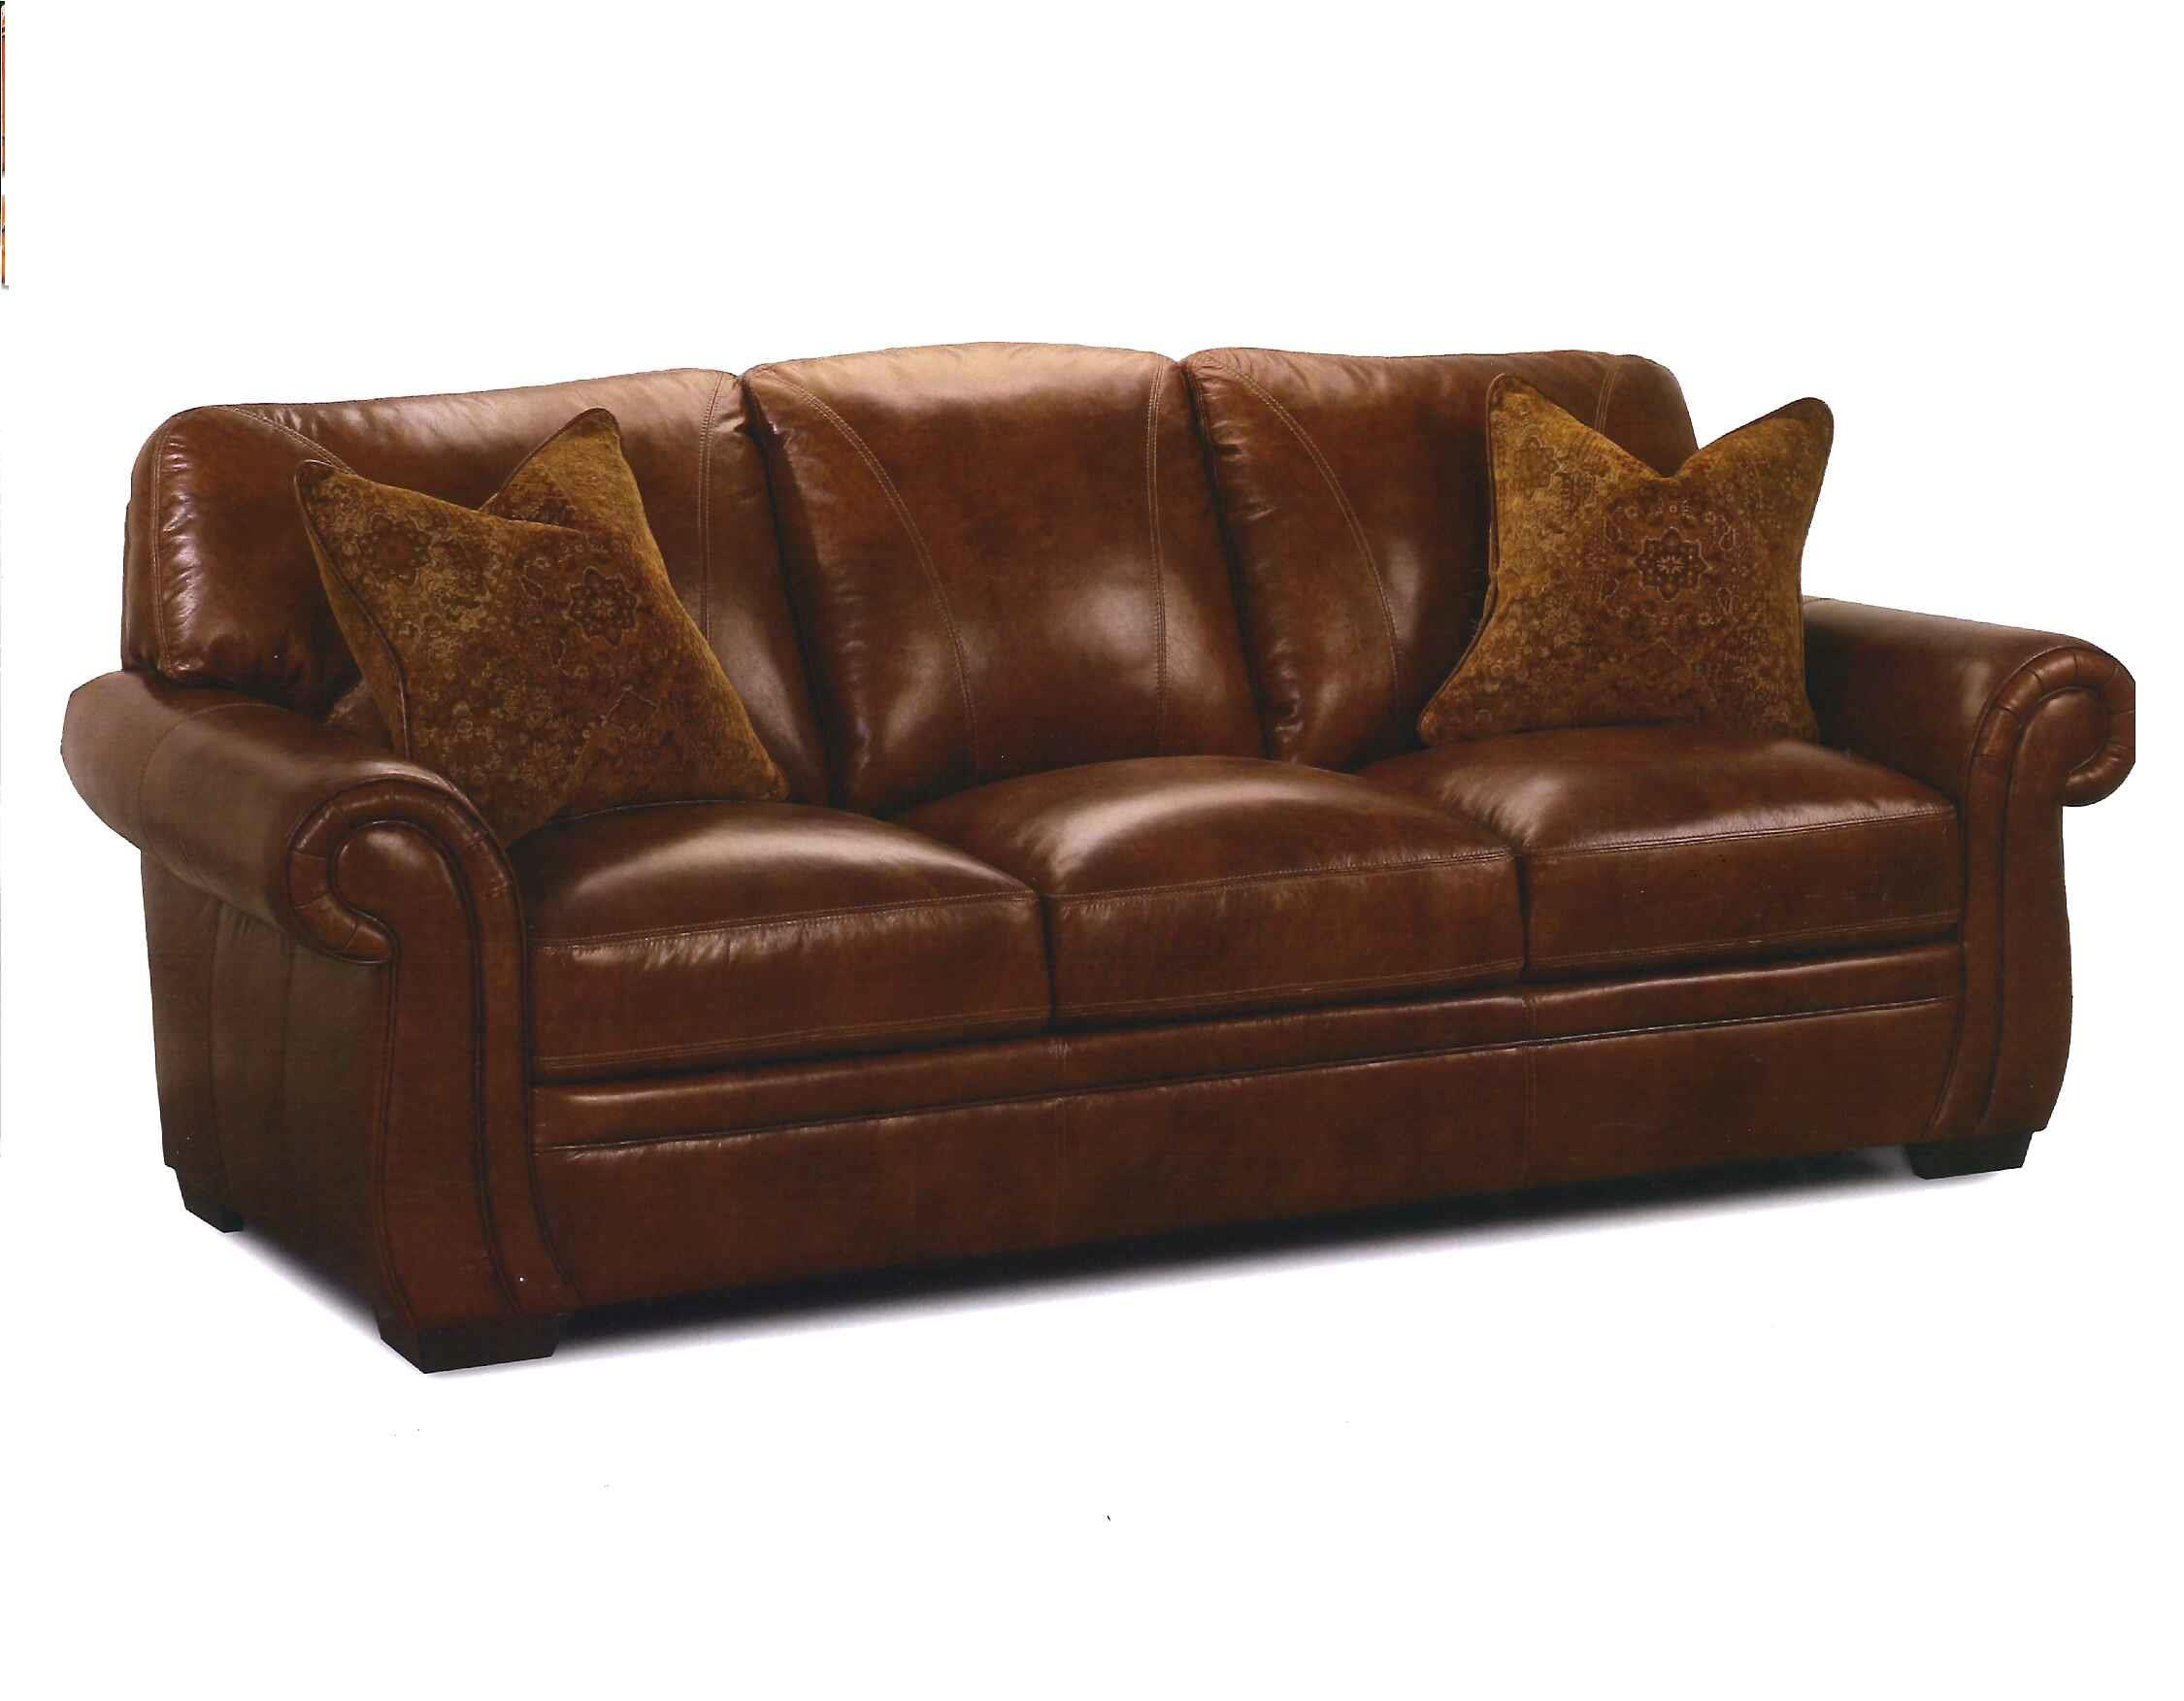 martino leather sofa wesley hall social all modern luxury fine home